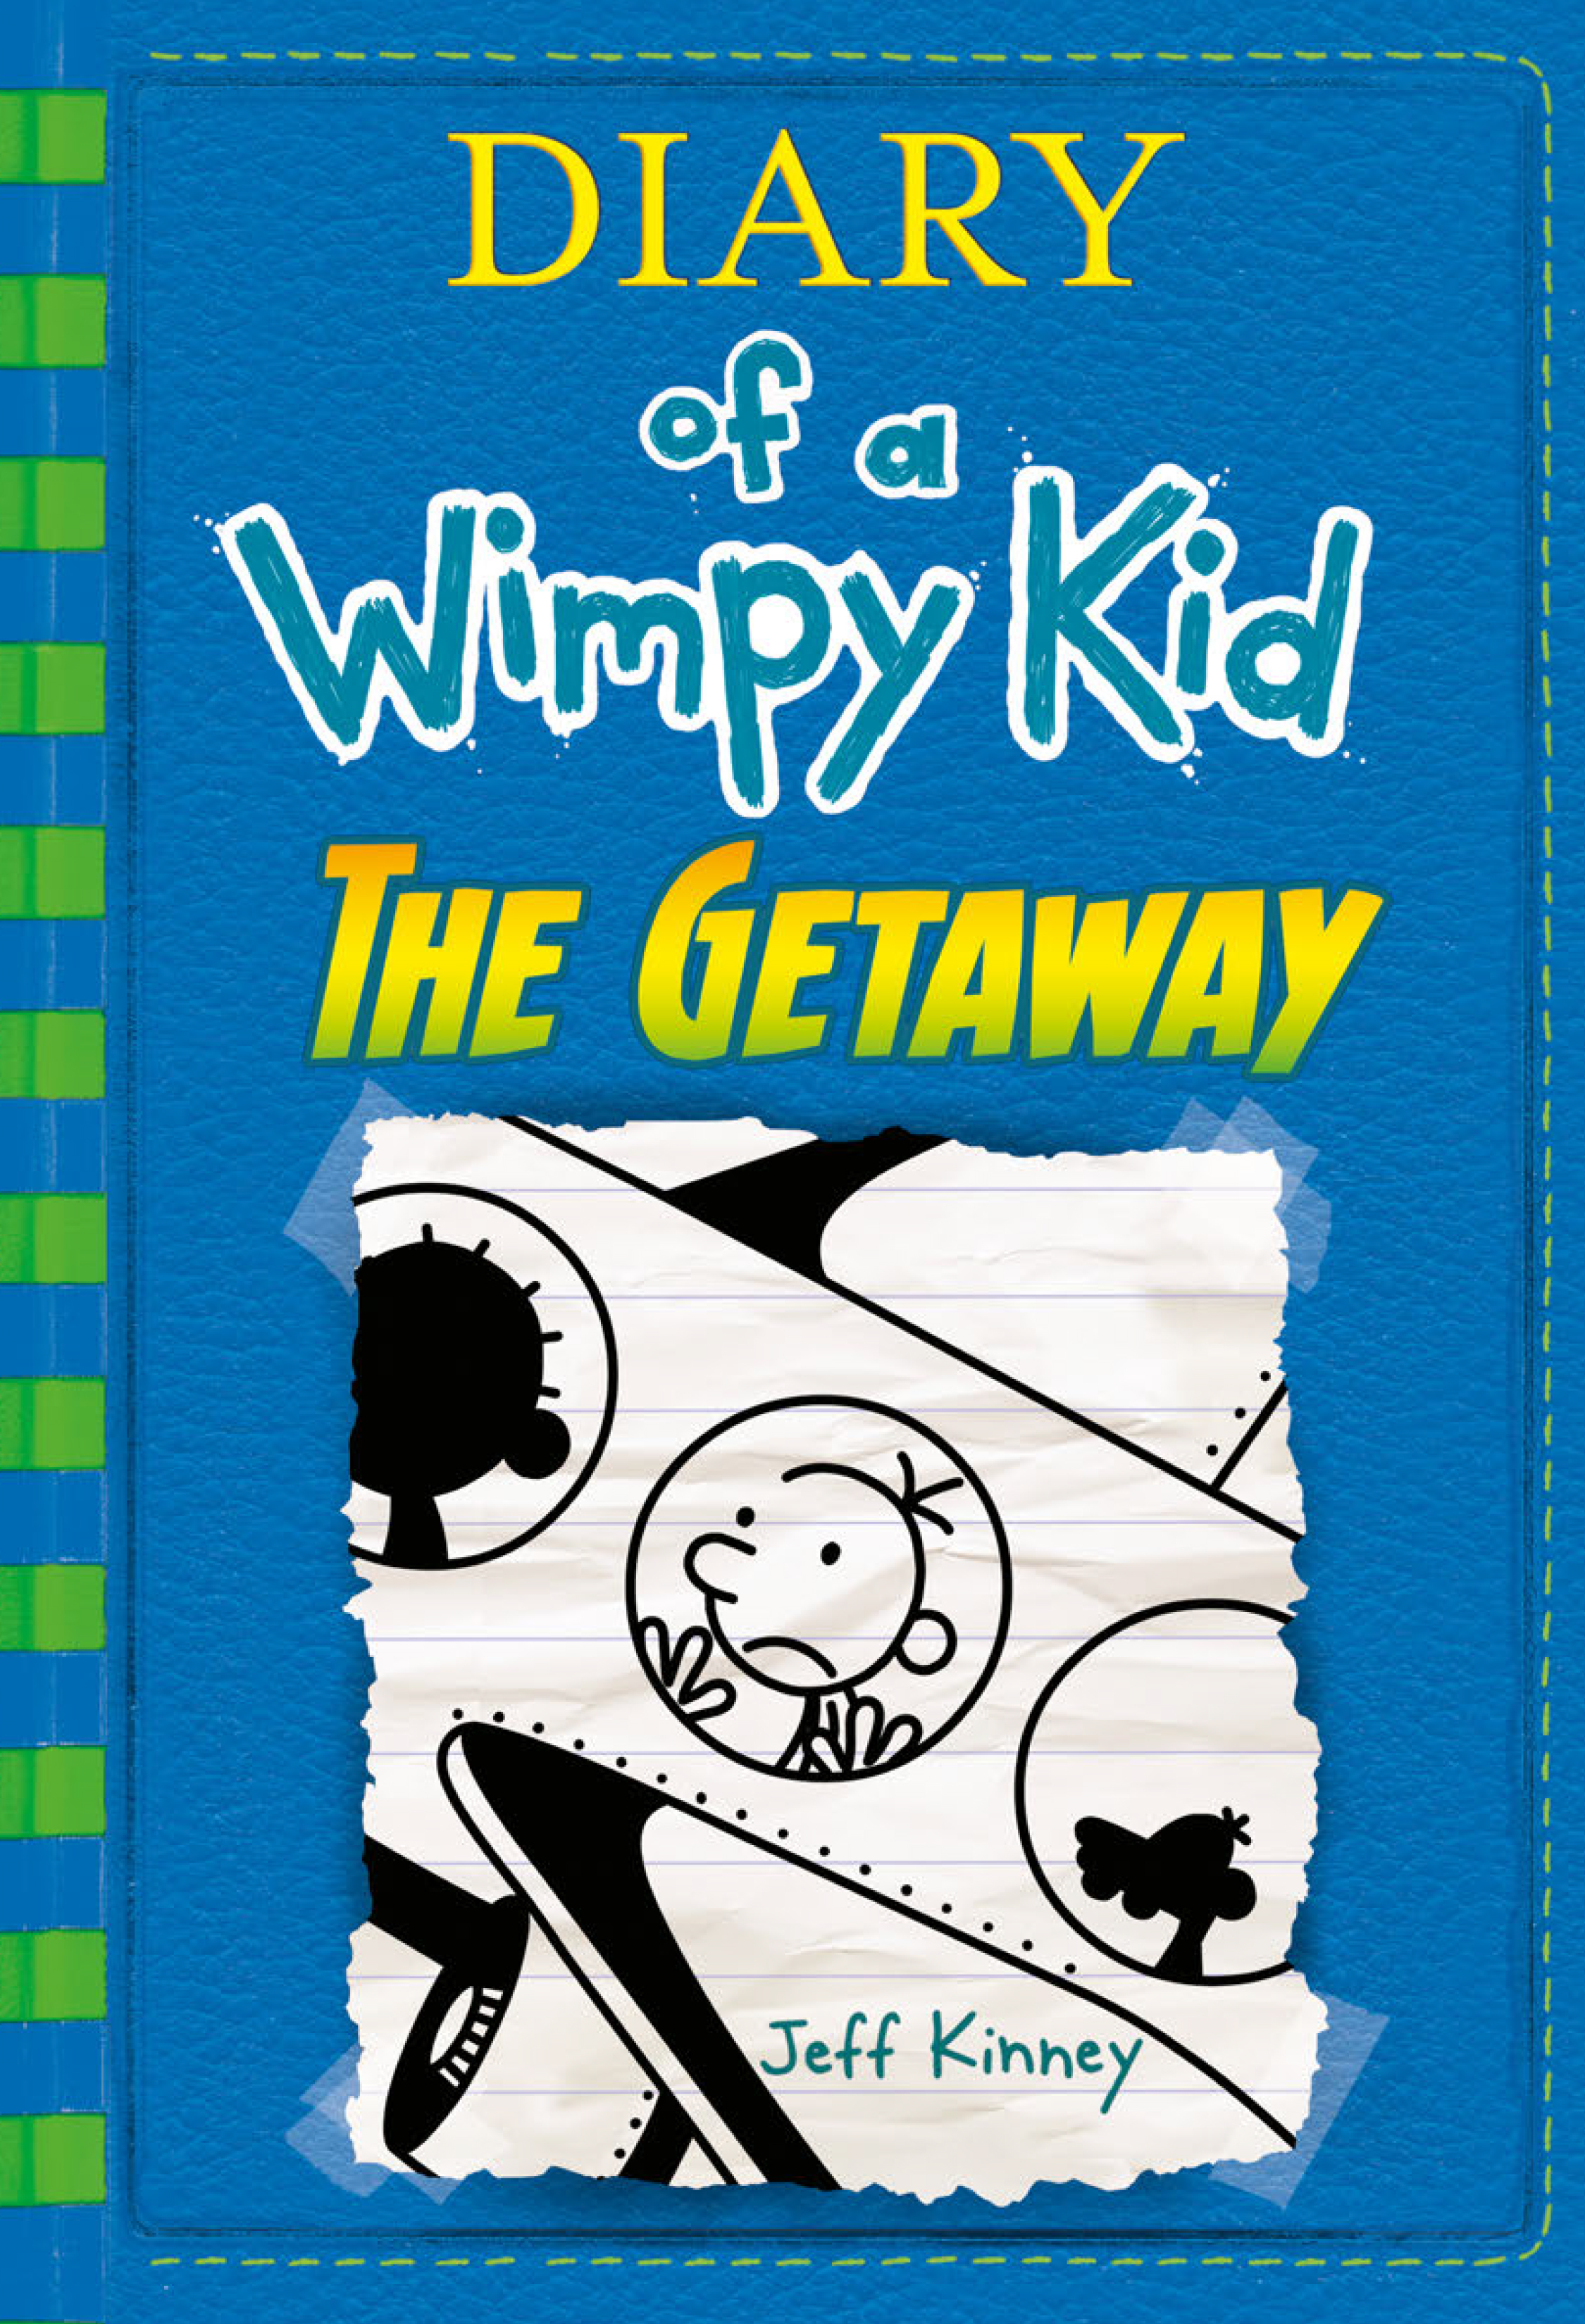 Cover Image of The Getaway (Diary of a Wimpy Kid Book 12)